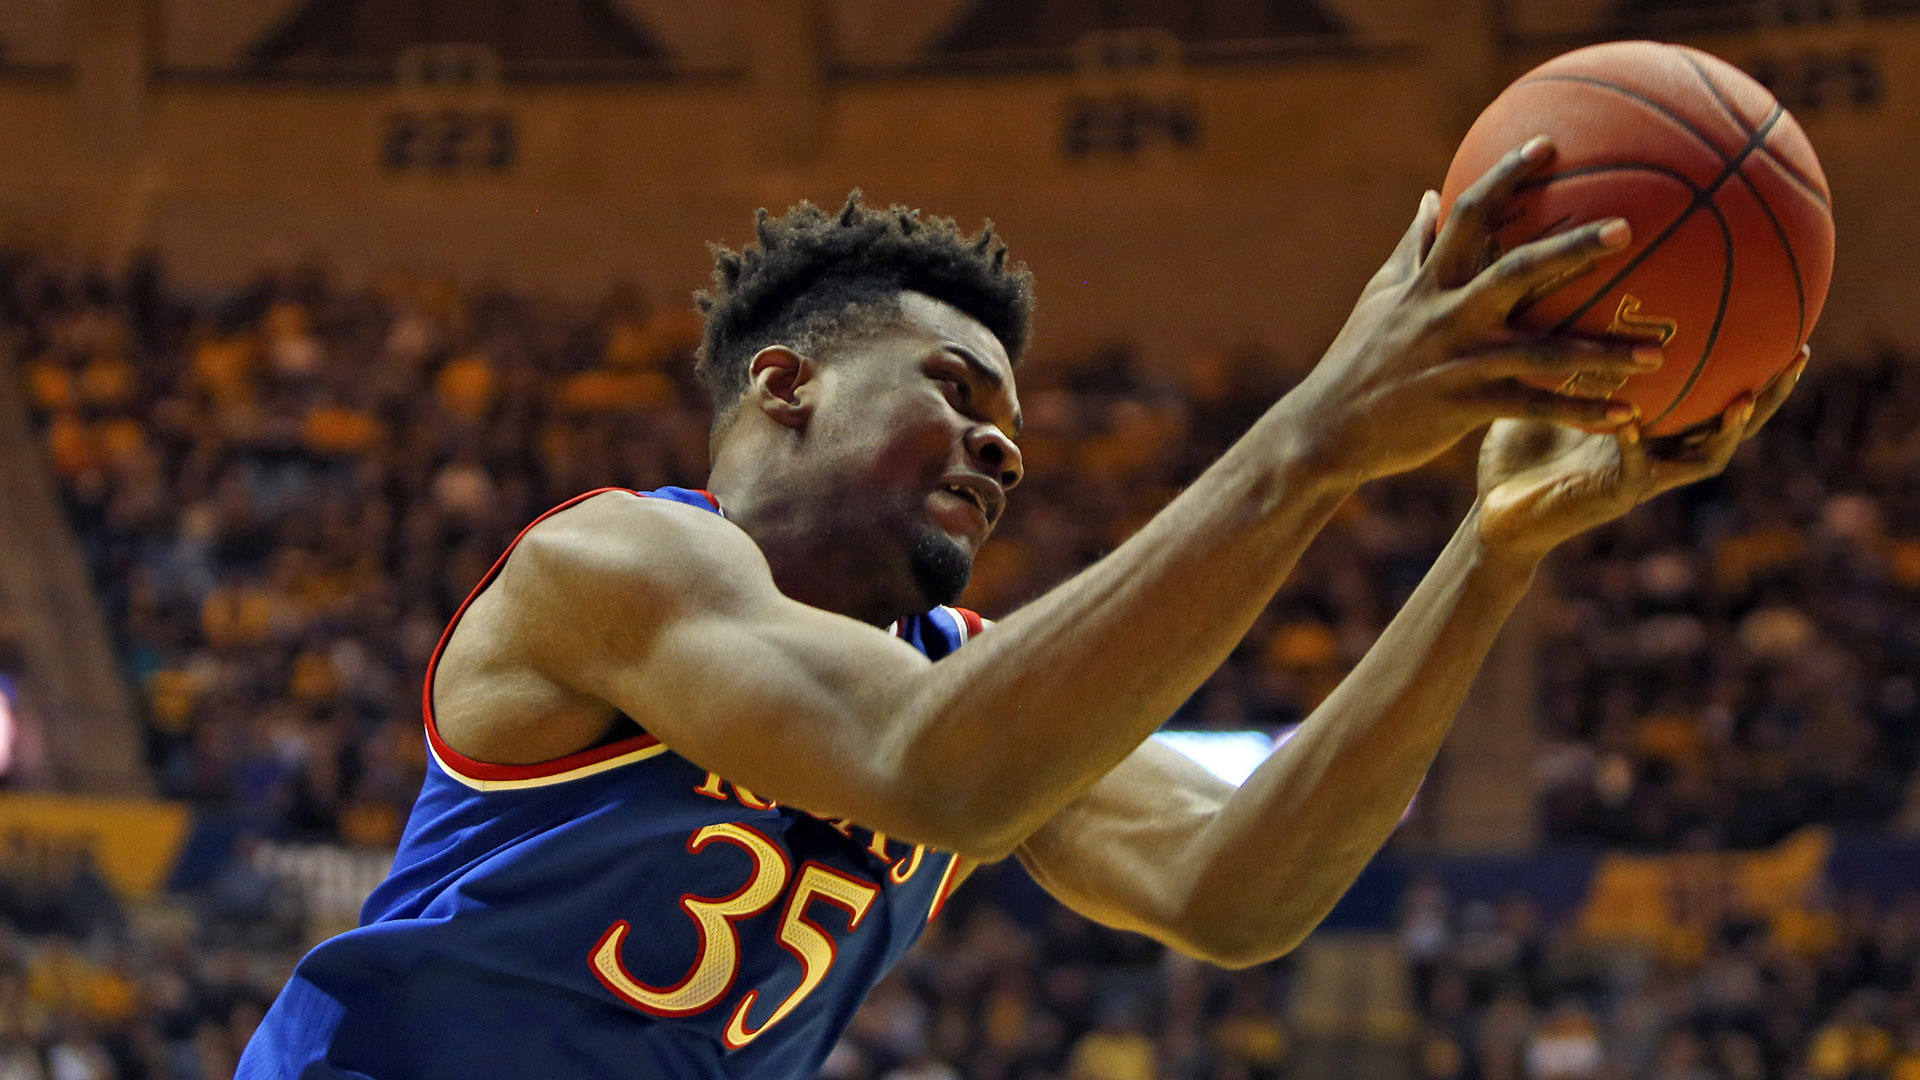 Police called on man offering 'free throw advice' as Kansas basketball dorm